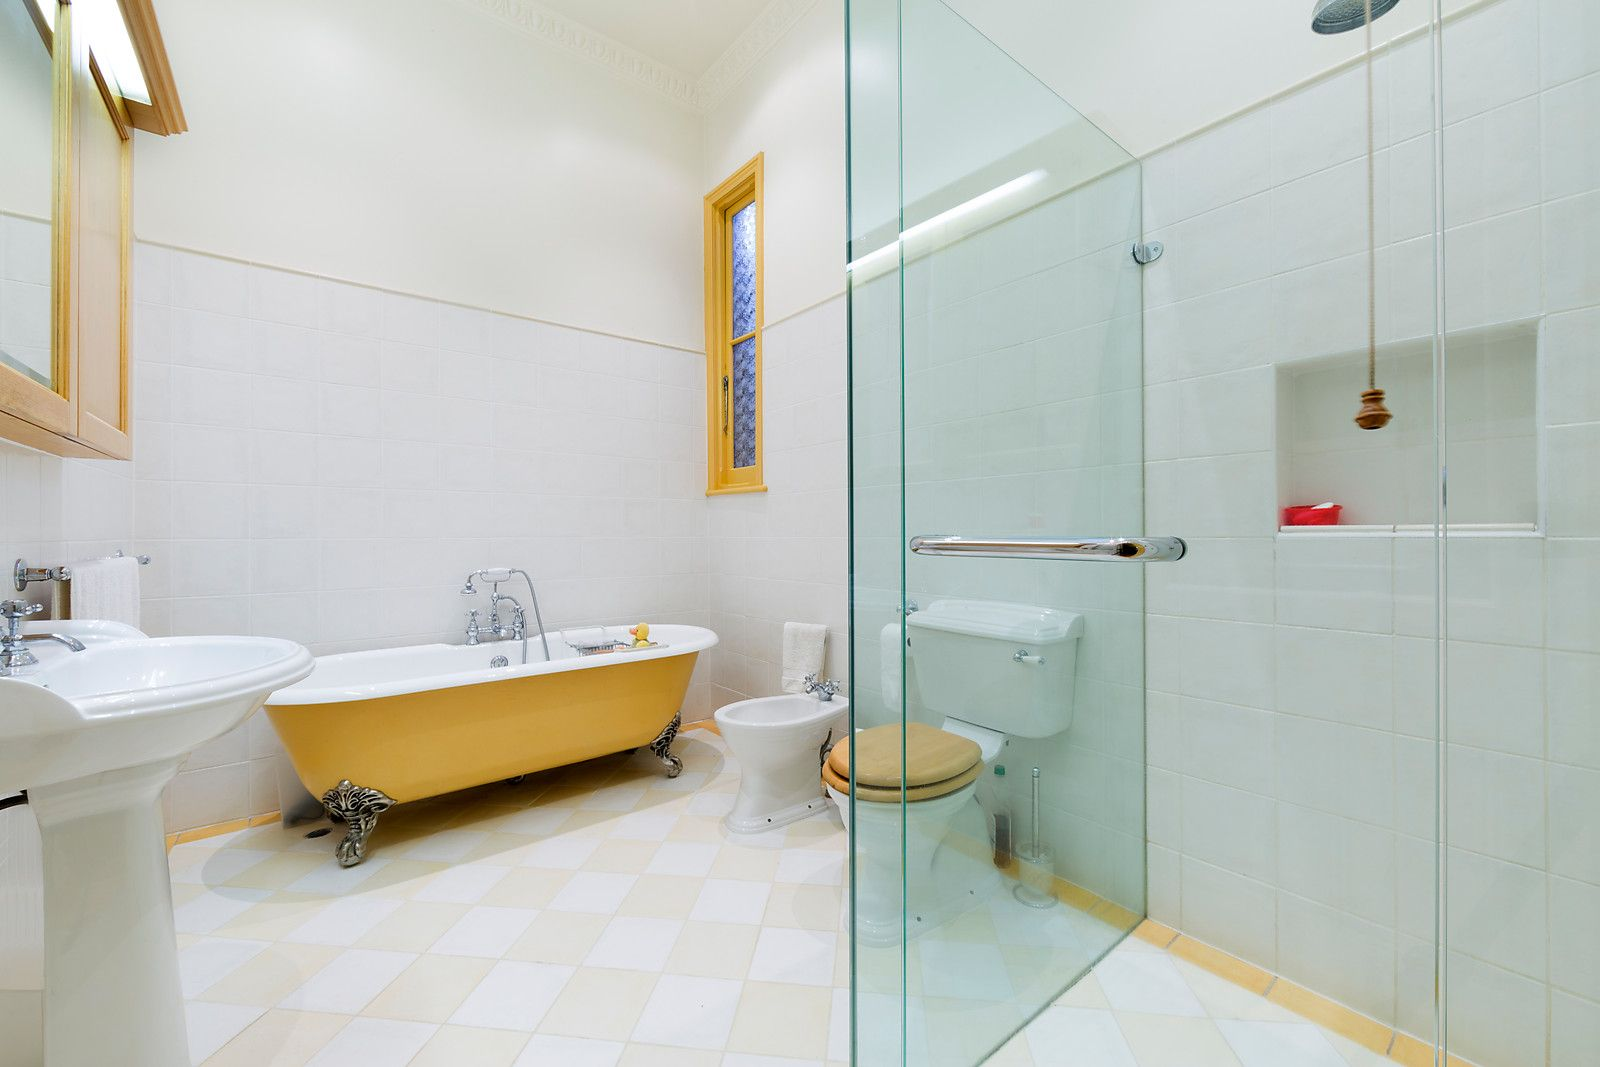 973-975 Rathdowne Street, Carlton North VIC 3054 - House For Sale - 2012431524